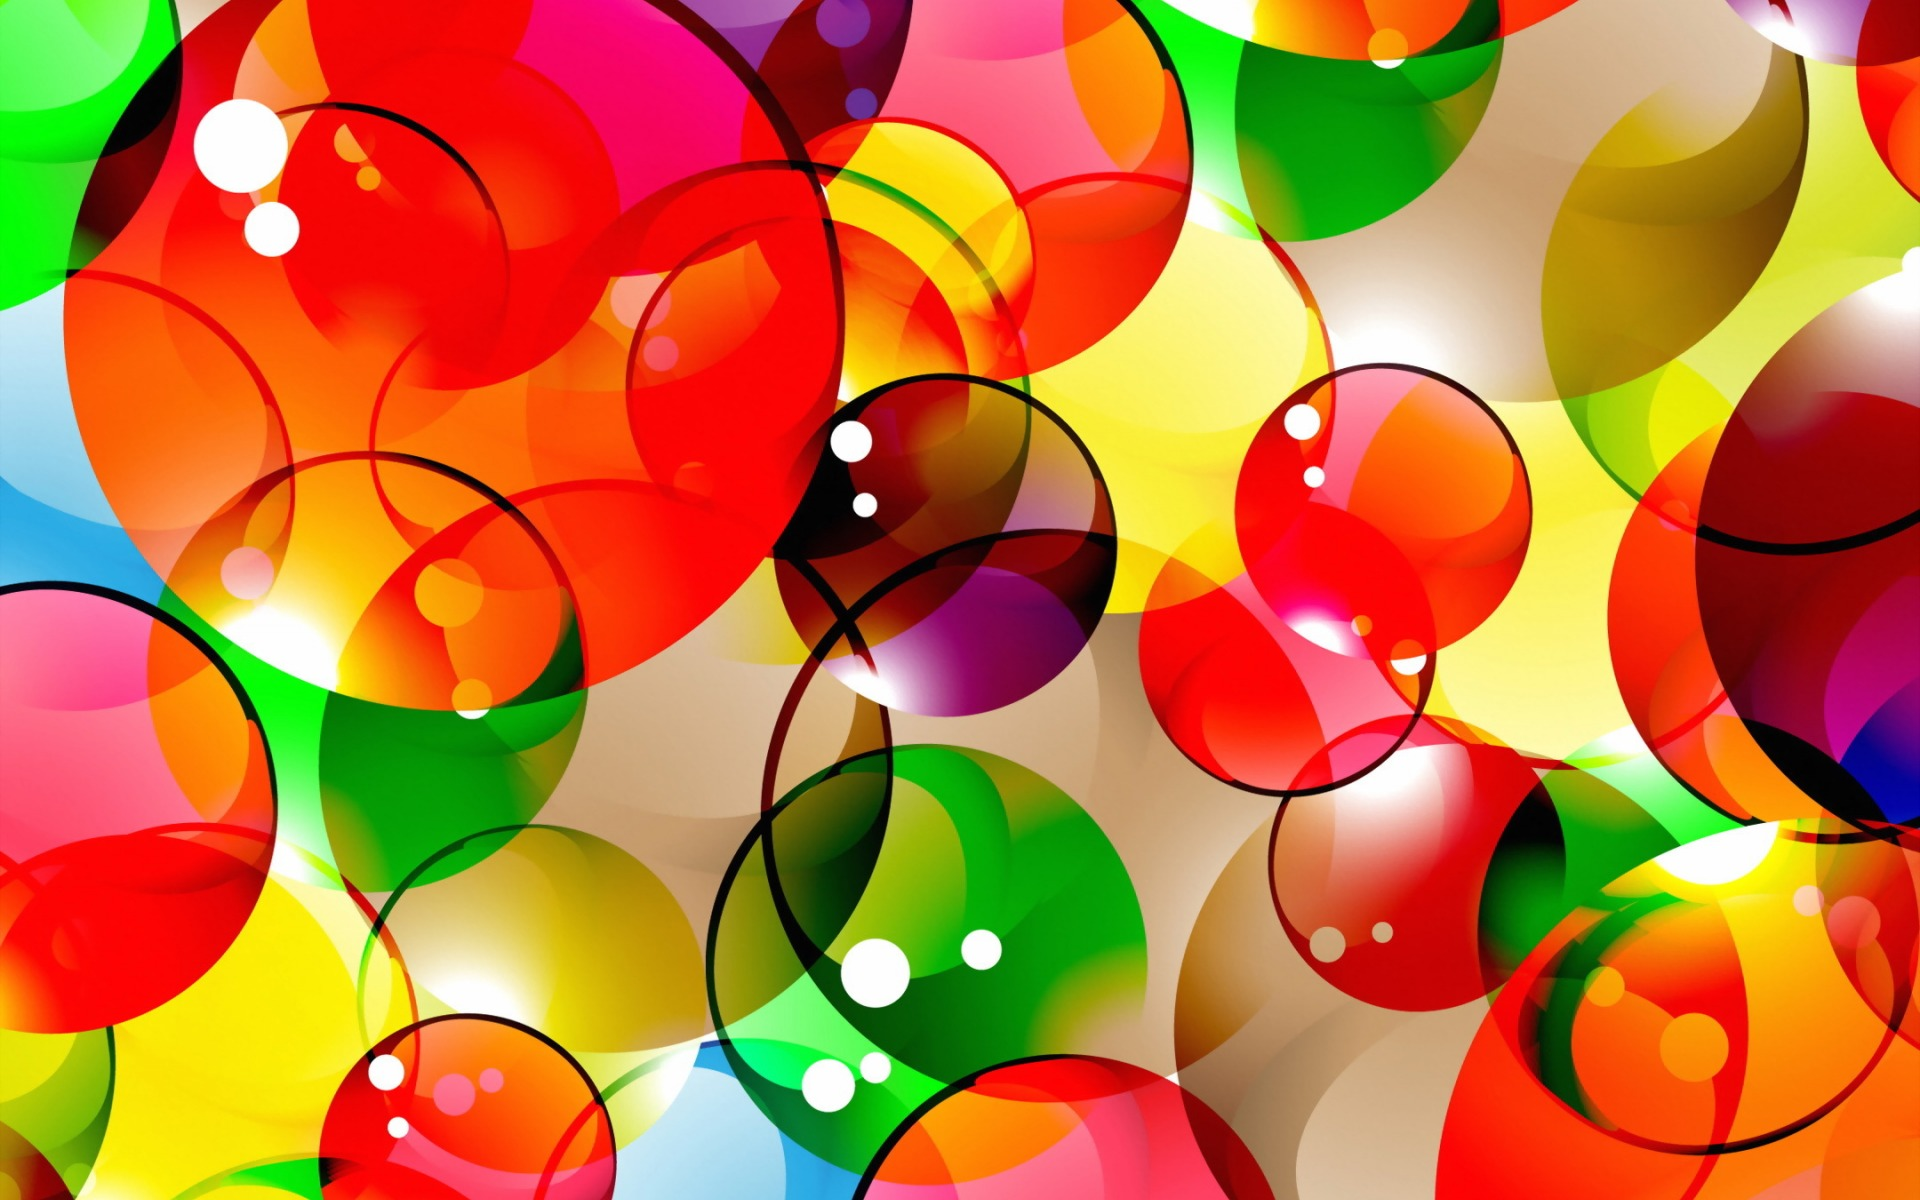 Abstract Multicolored Bubbles wallpaper